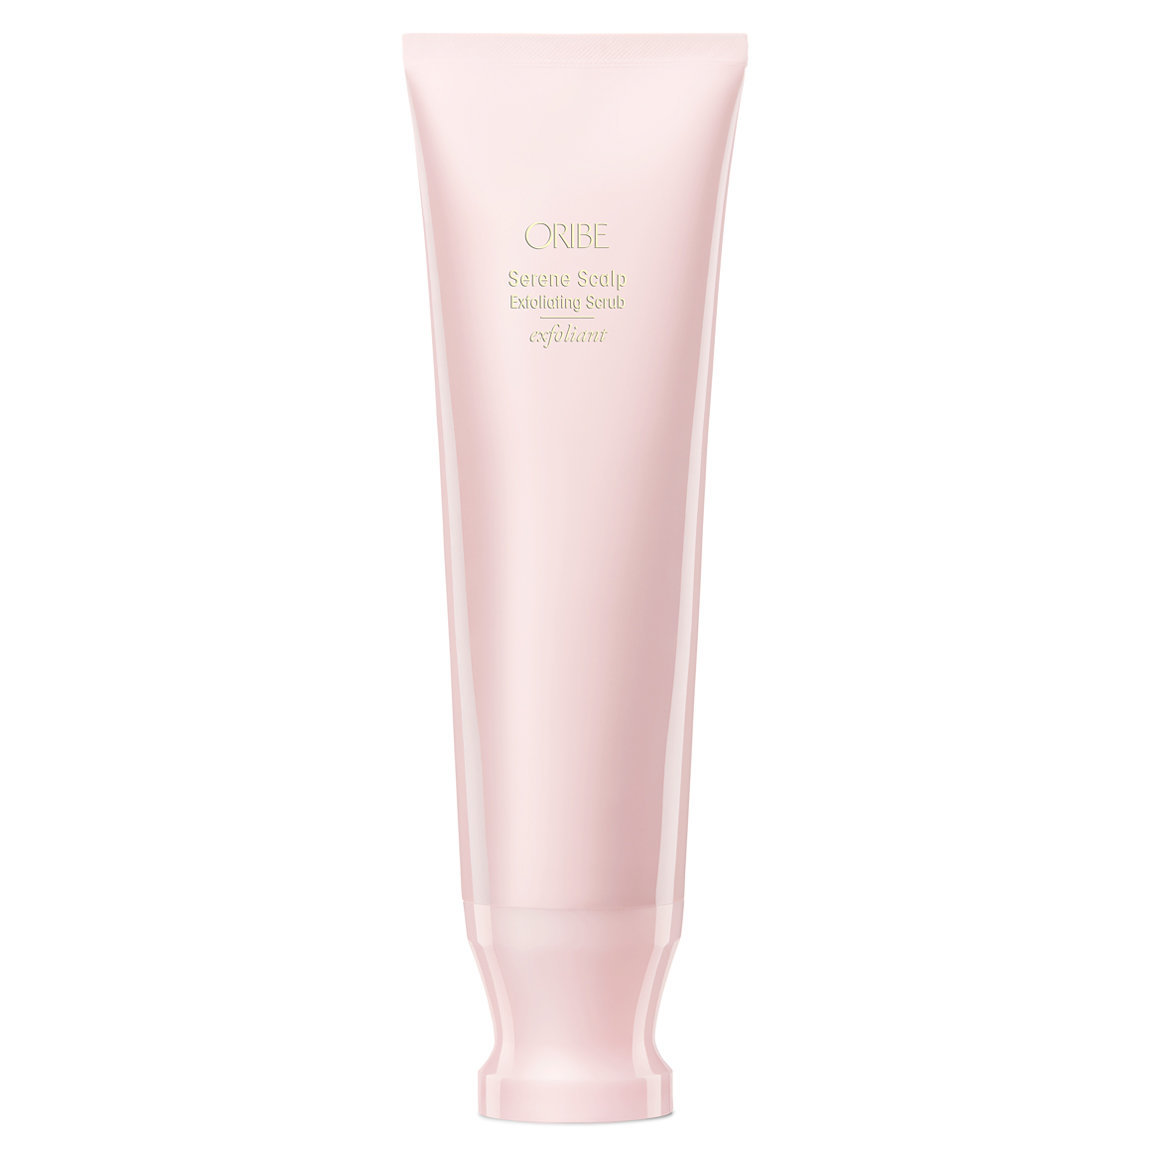 Oribe Serene Scalp Exfoliating Scrub alternative view 1 - product swatch.